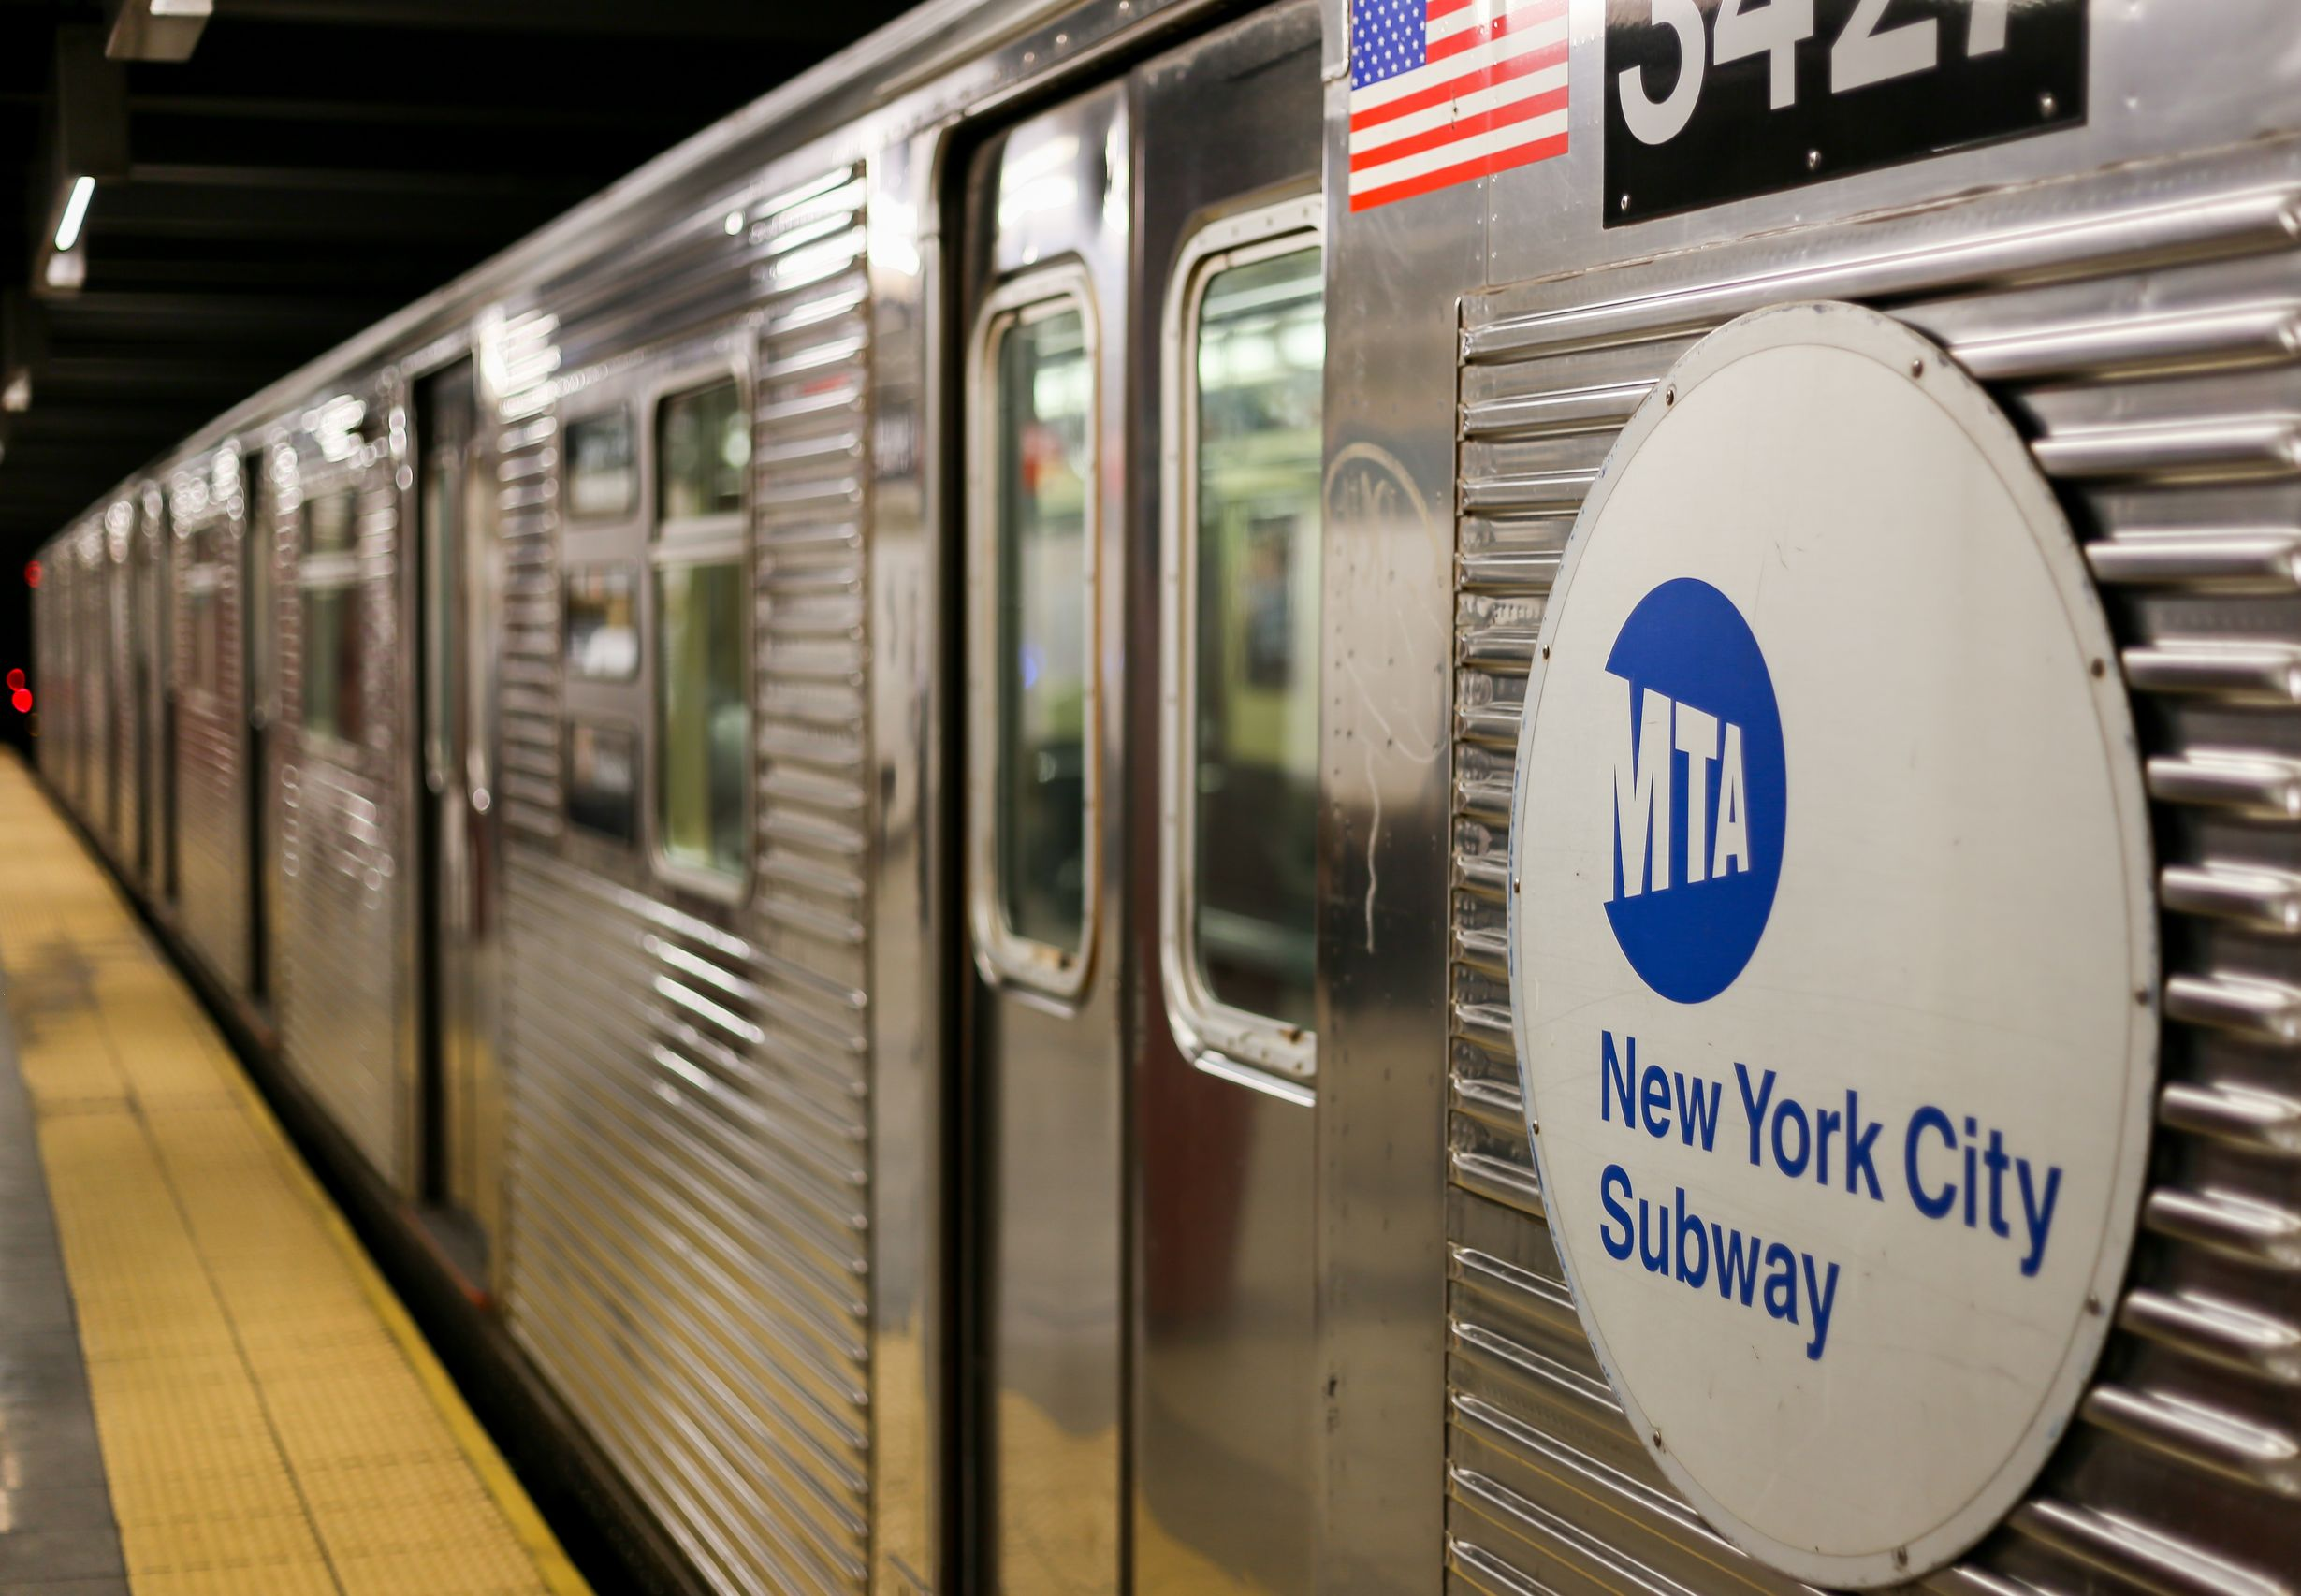 Substantial Rise In Bias Crimes On Subway, NYPD Says